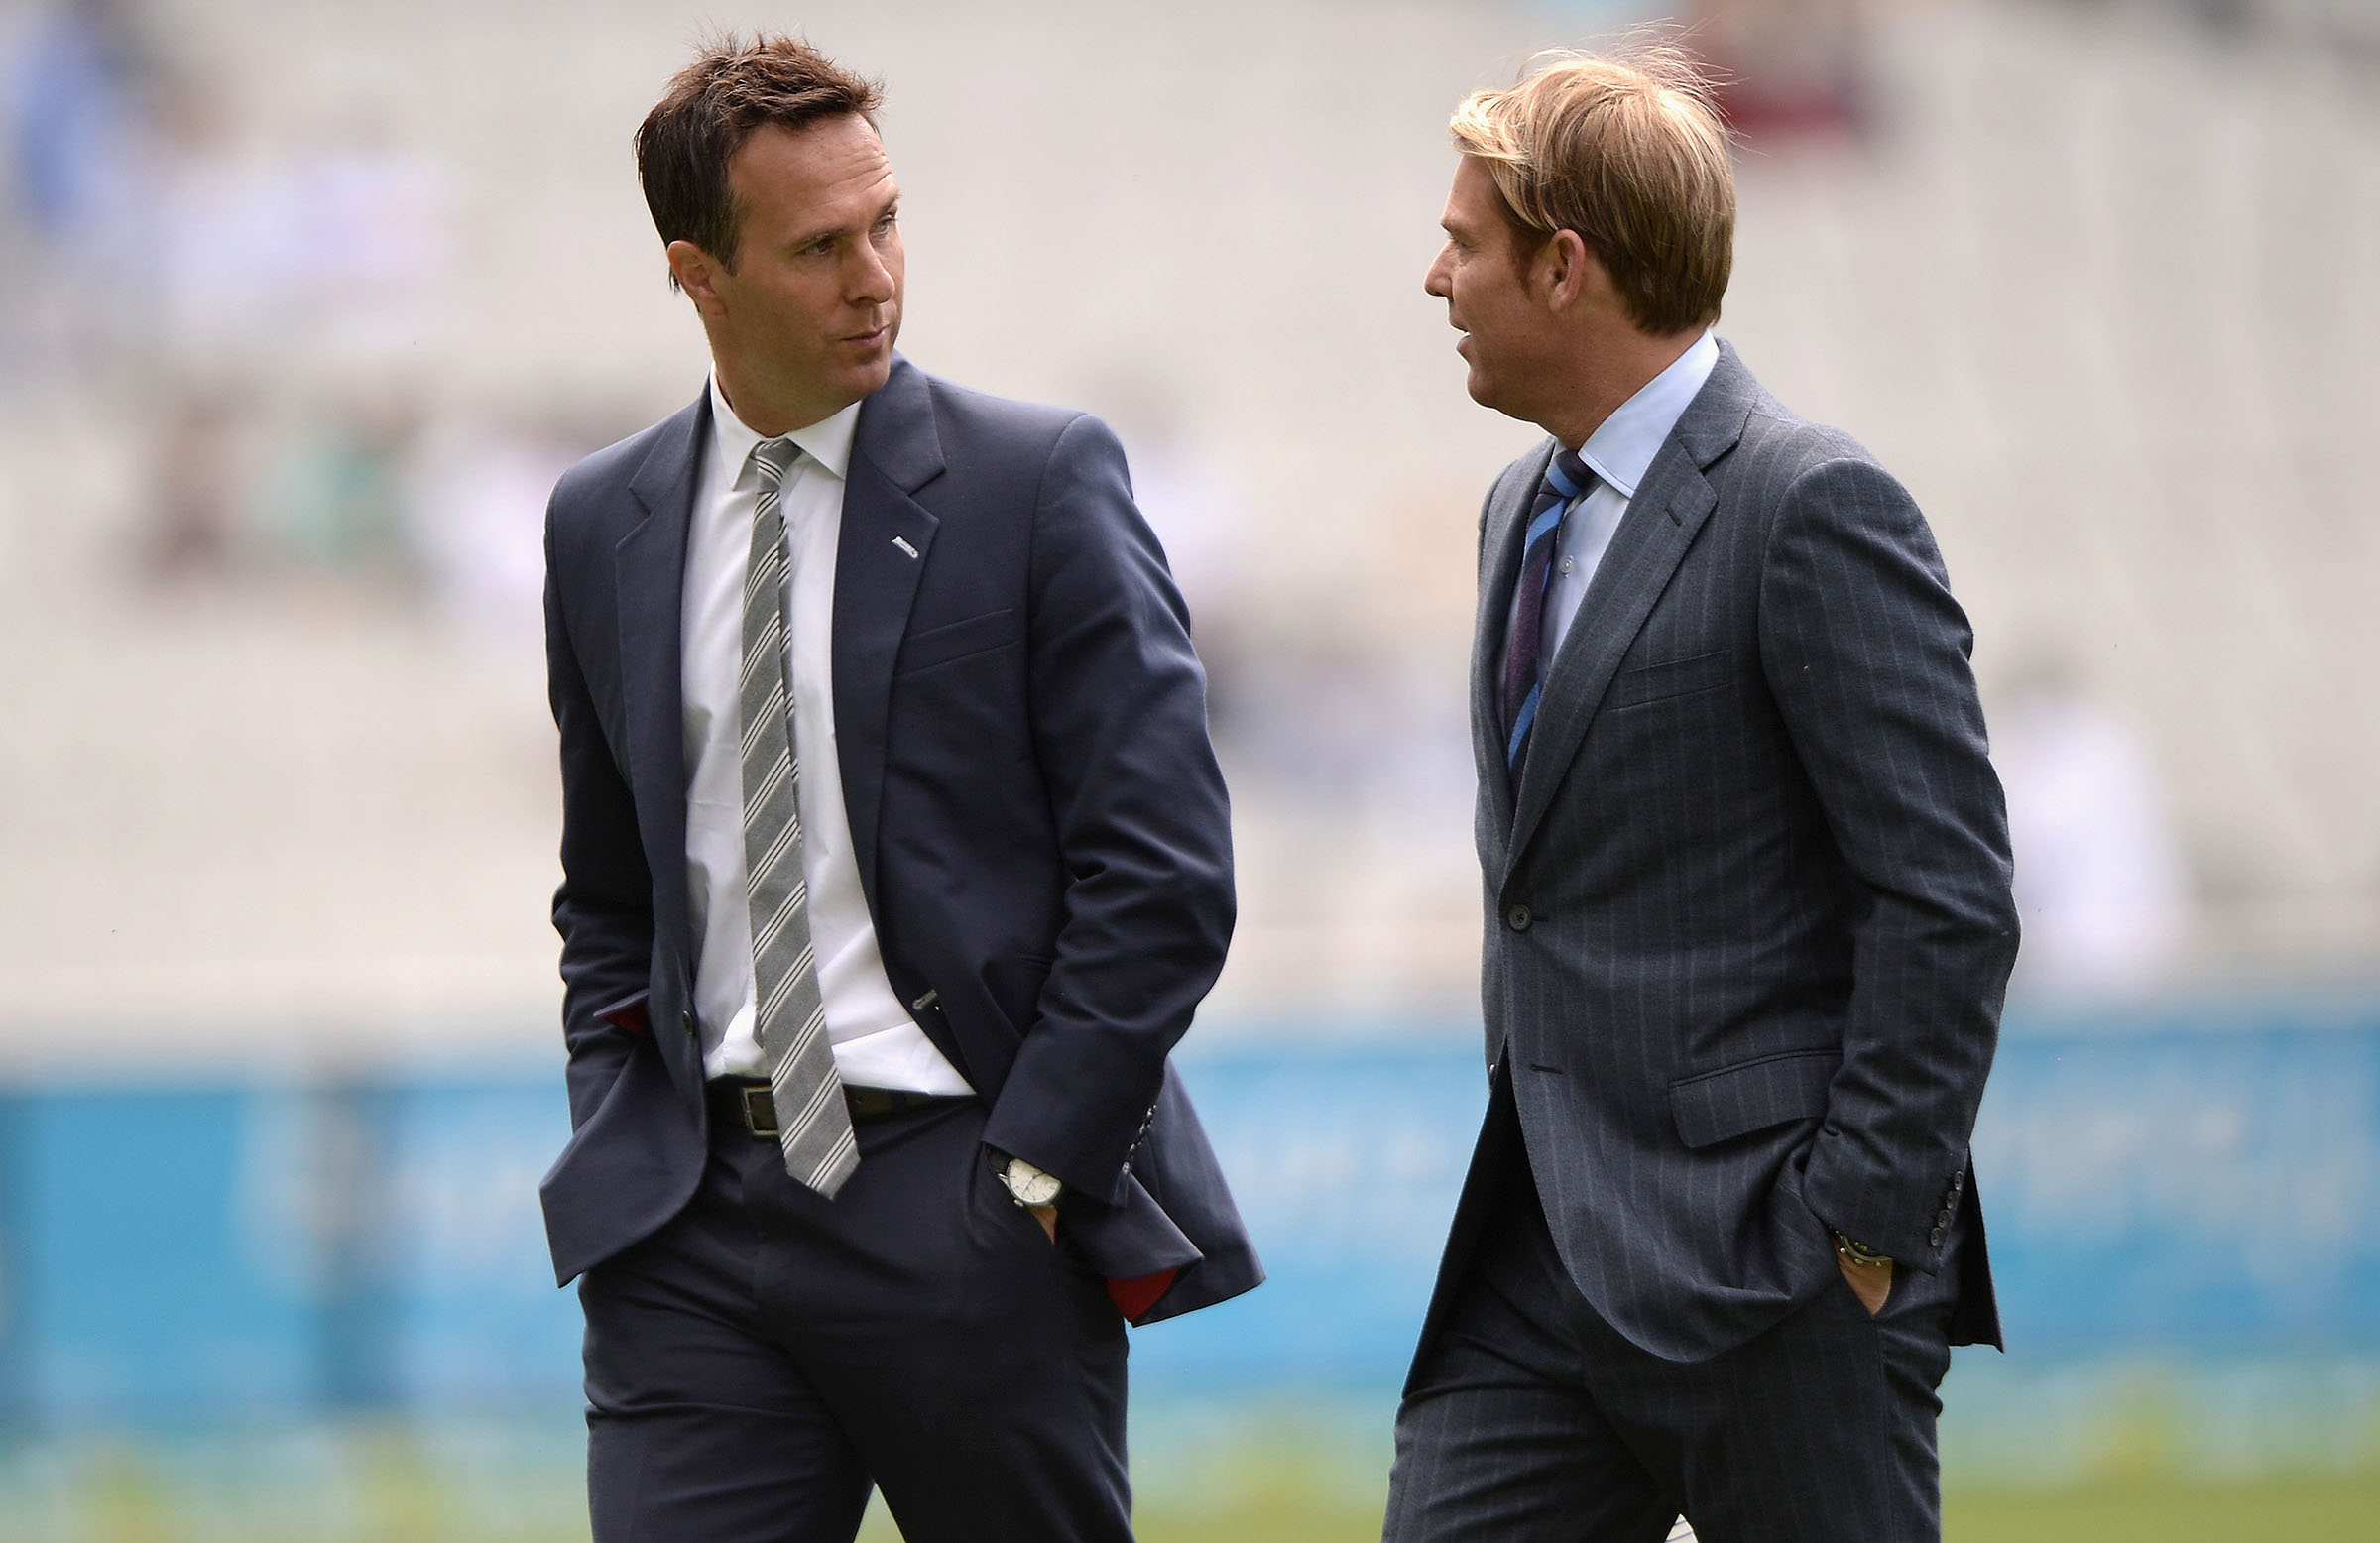 Former Ashes rivals, Vaughan and Warne have joined Fox // Getty